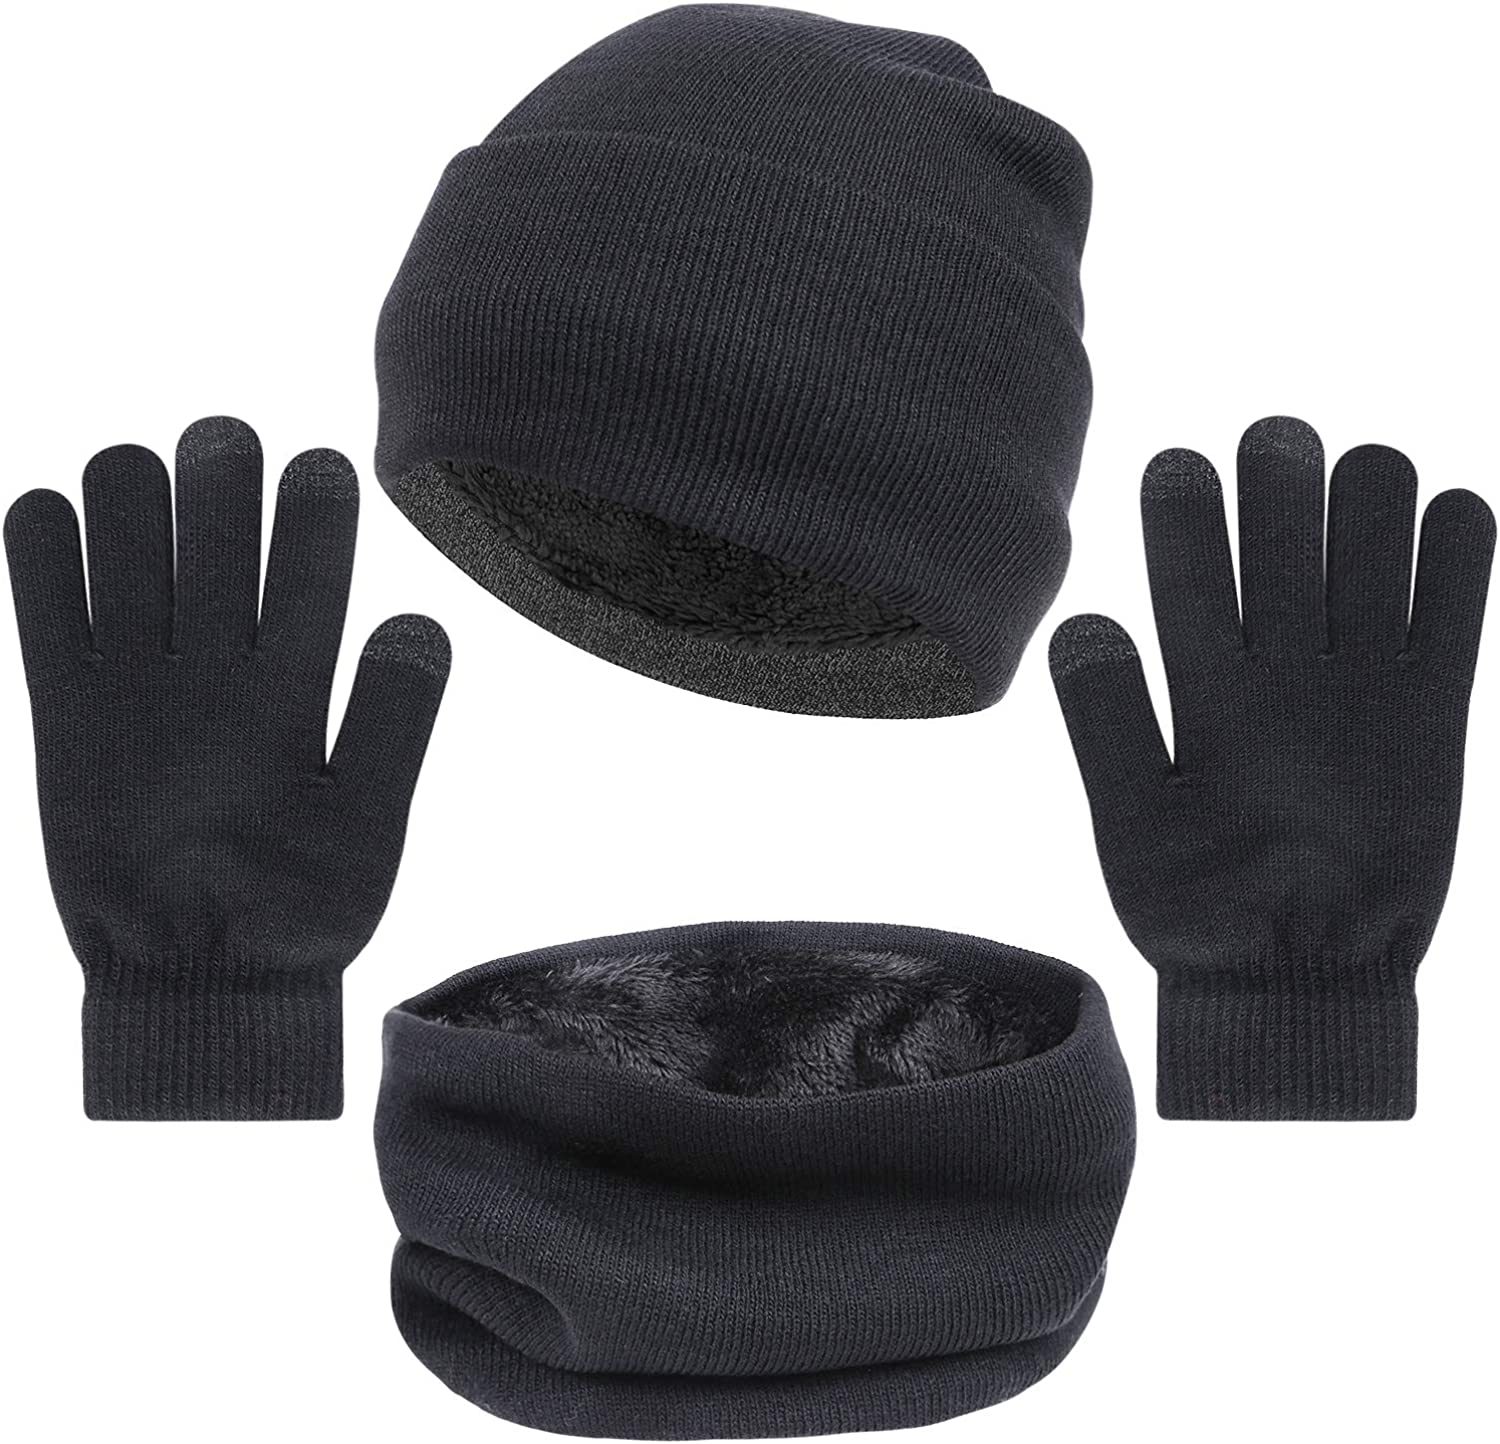 3 PCS Winter Beanie Hat, Scarf and Touch-Screen Gloves Set for Men and Women Knit Cap Neck Warmer Mitten Set